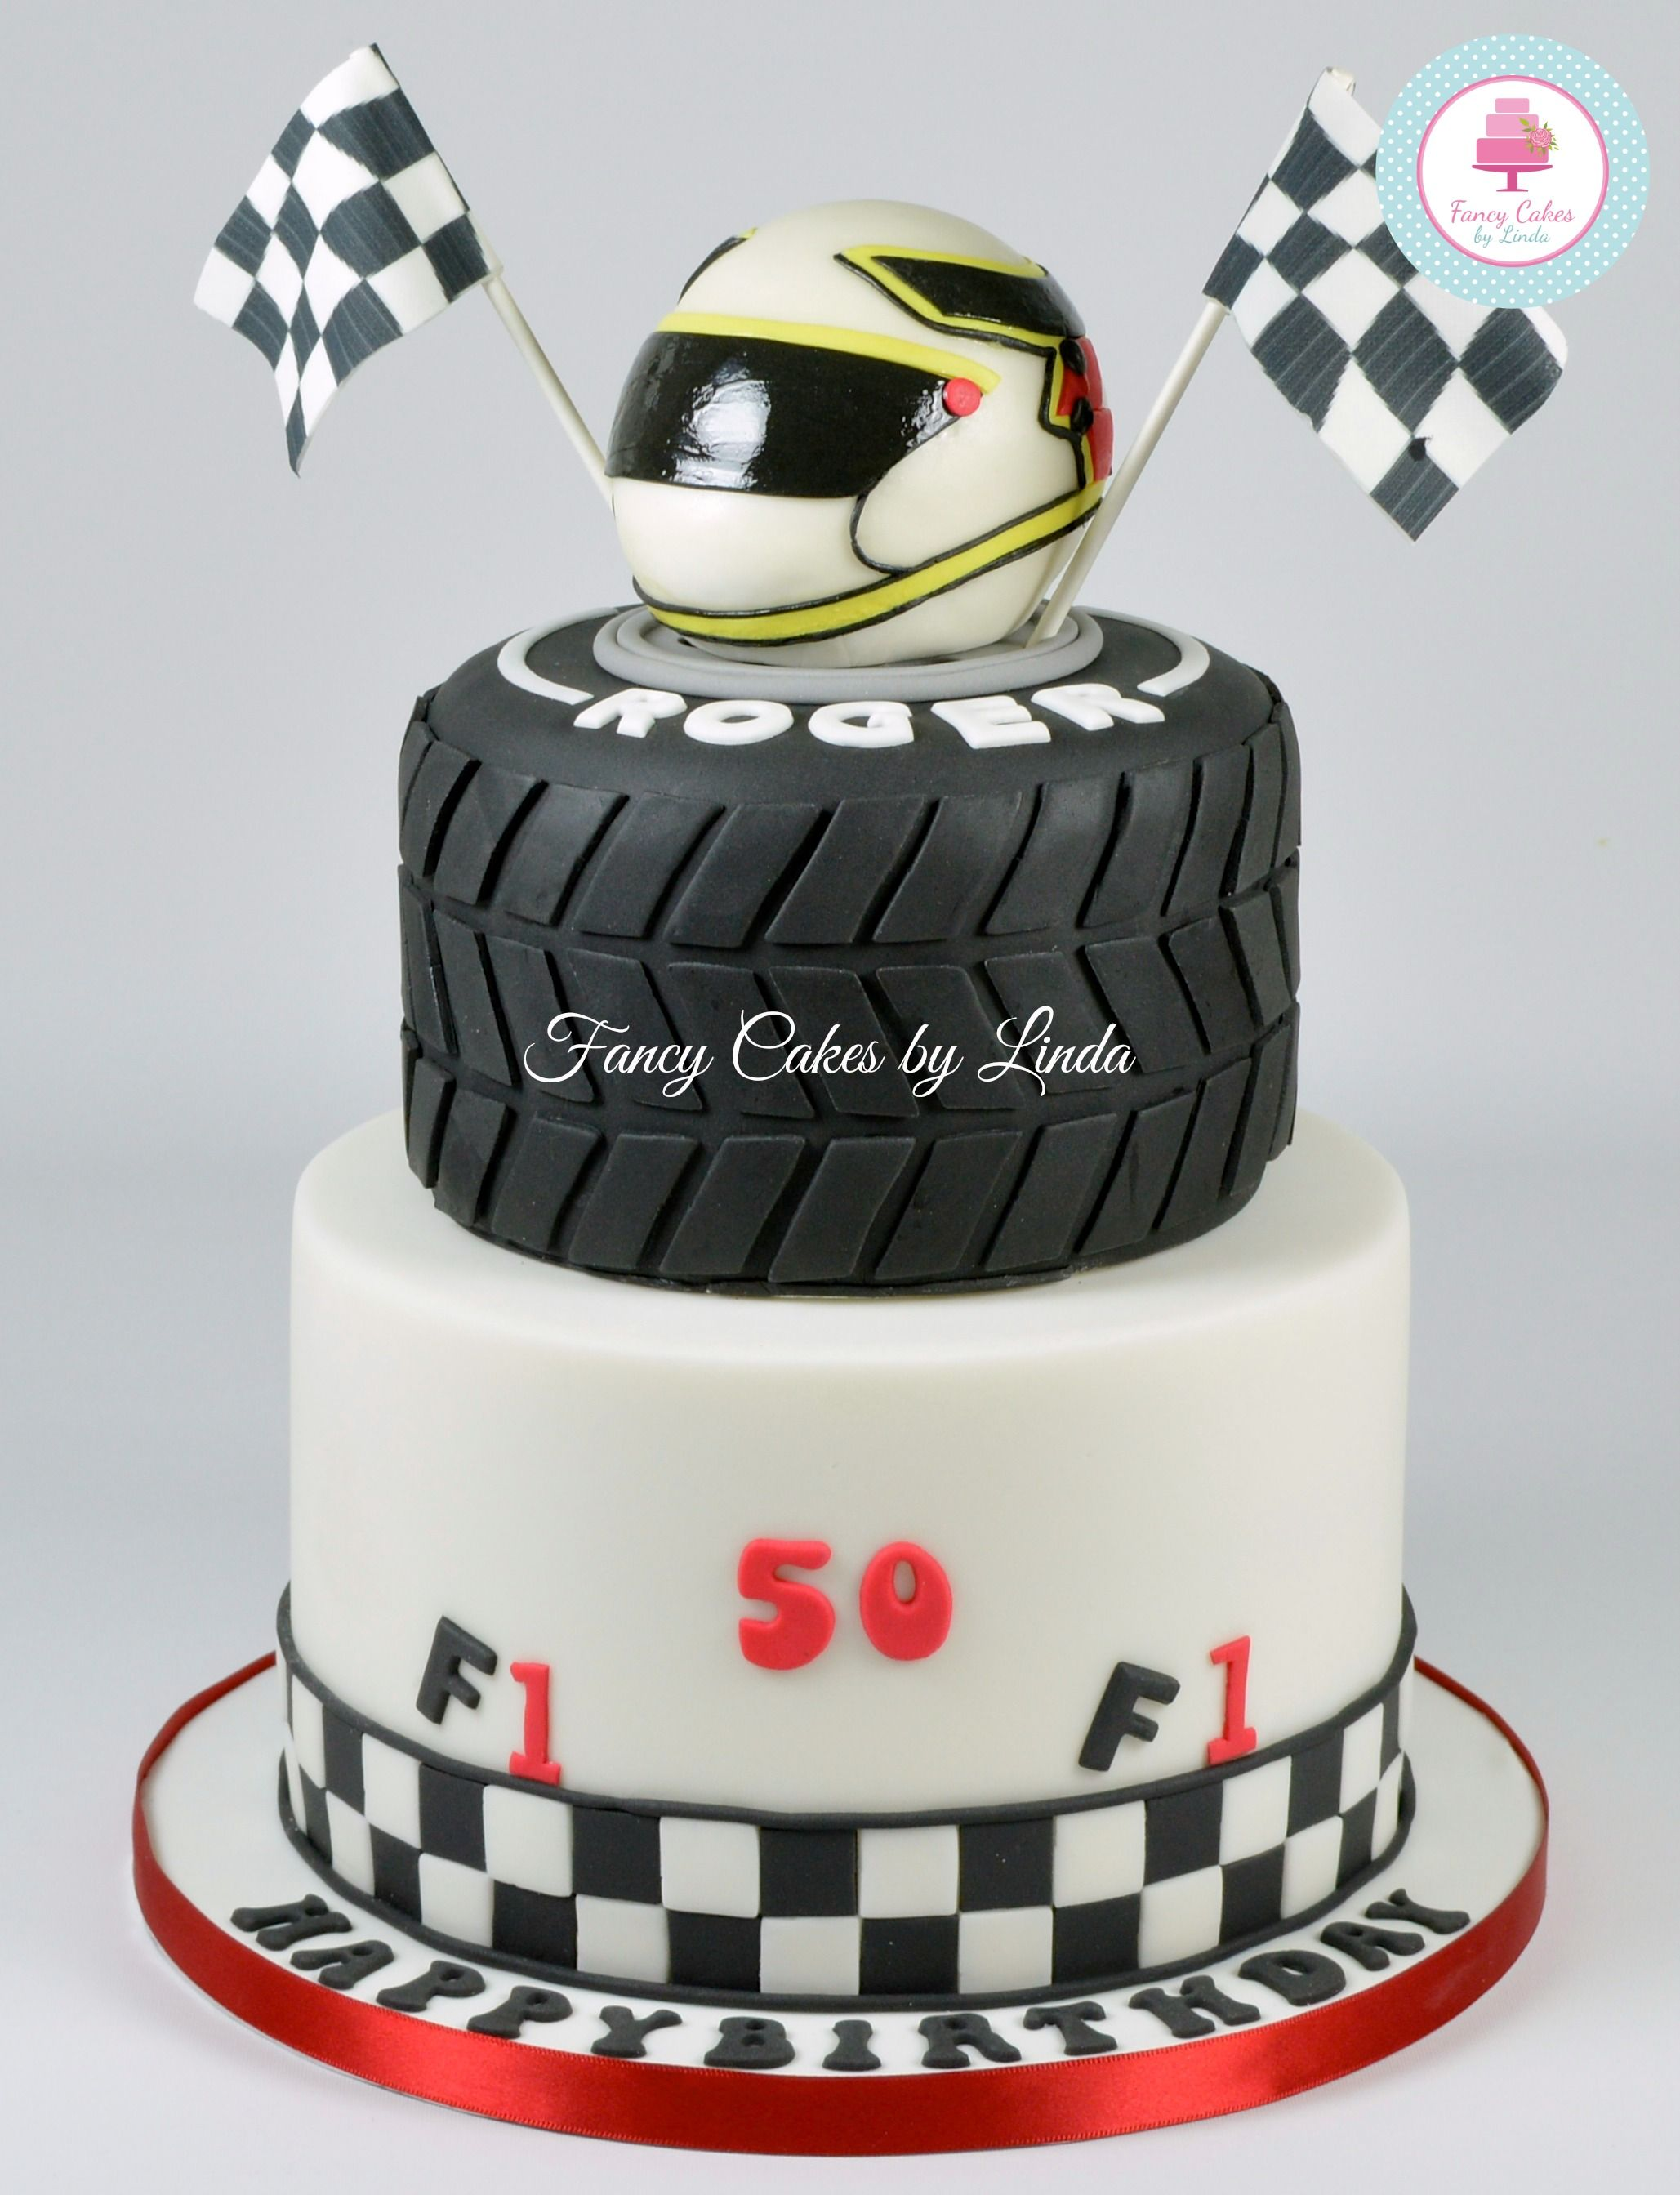 f1 car cake template - formula one themed birthday cake 07917815712